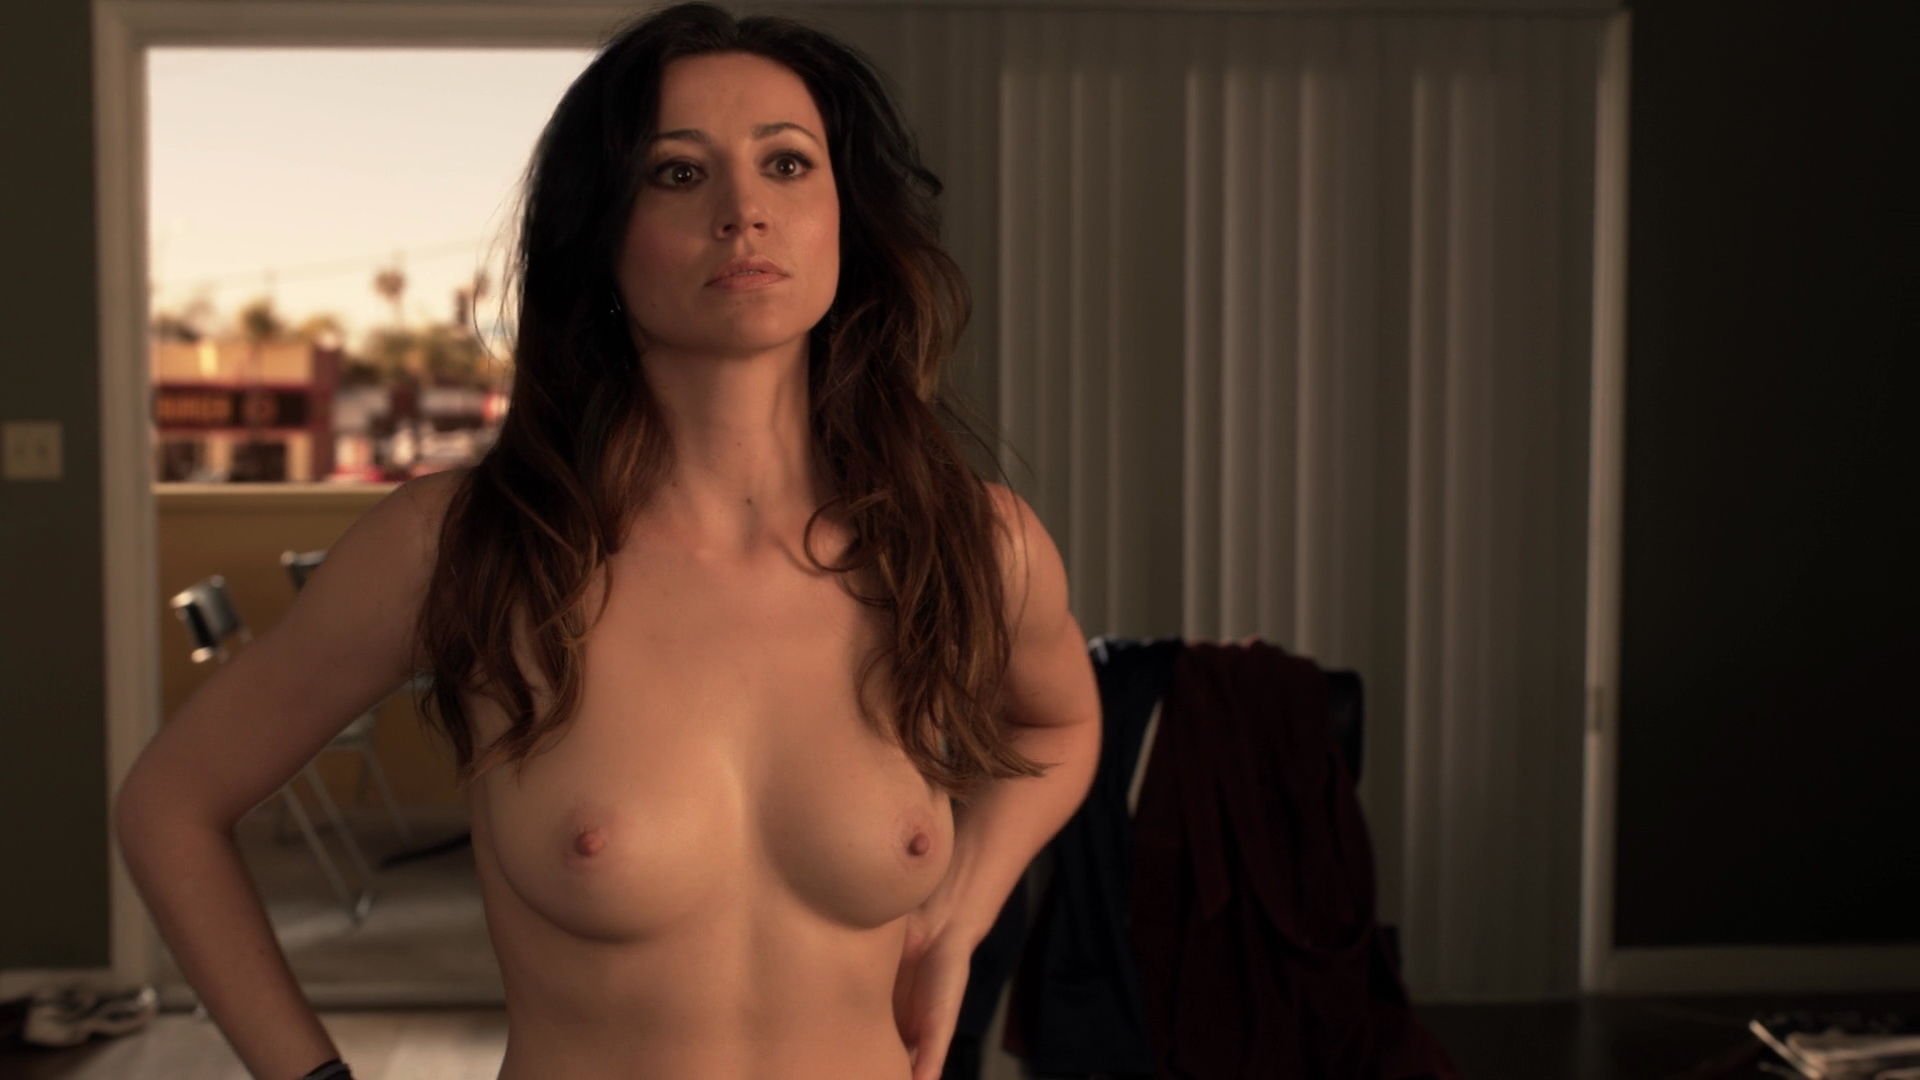 Ashley williams pictures topless softcore scenes